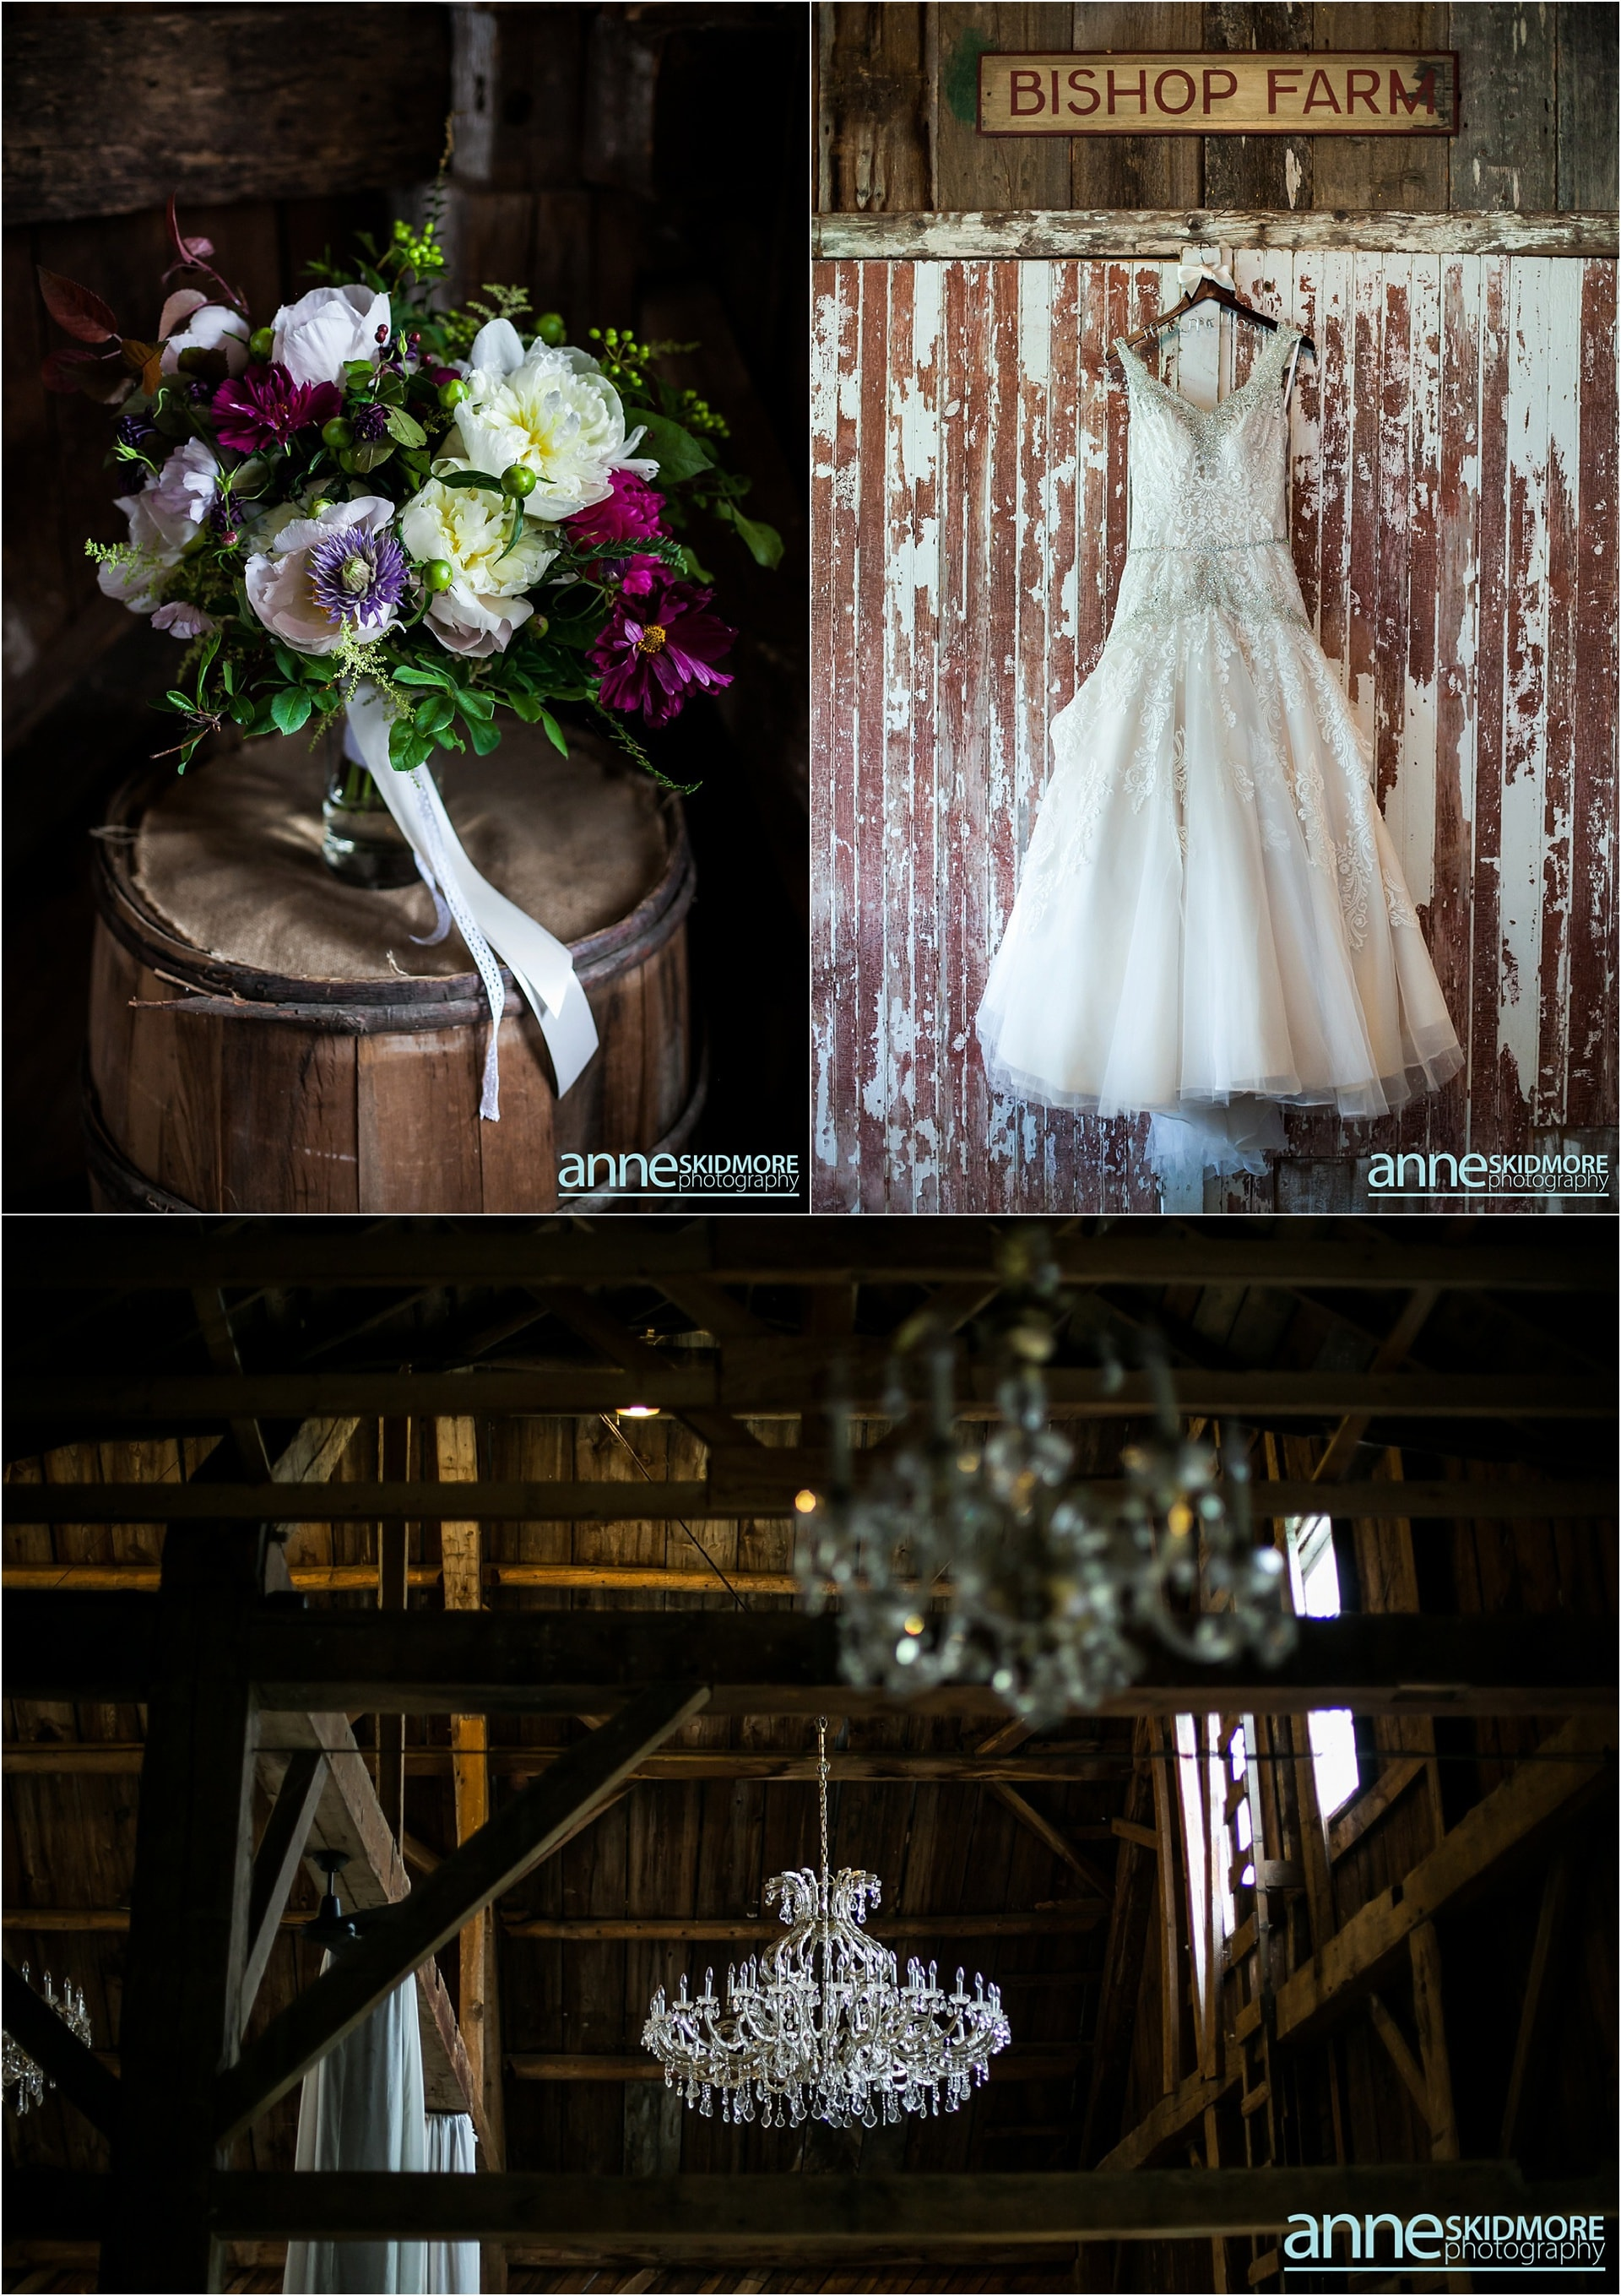 BISHOP_FARM_WEDDING__001